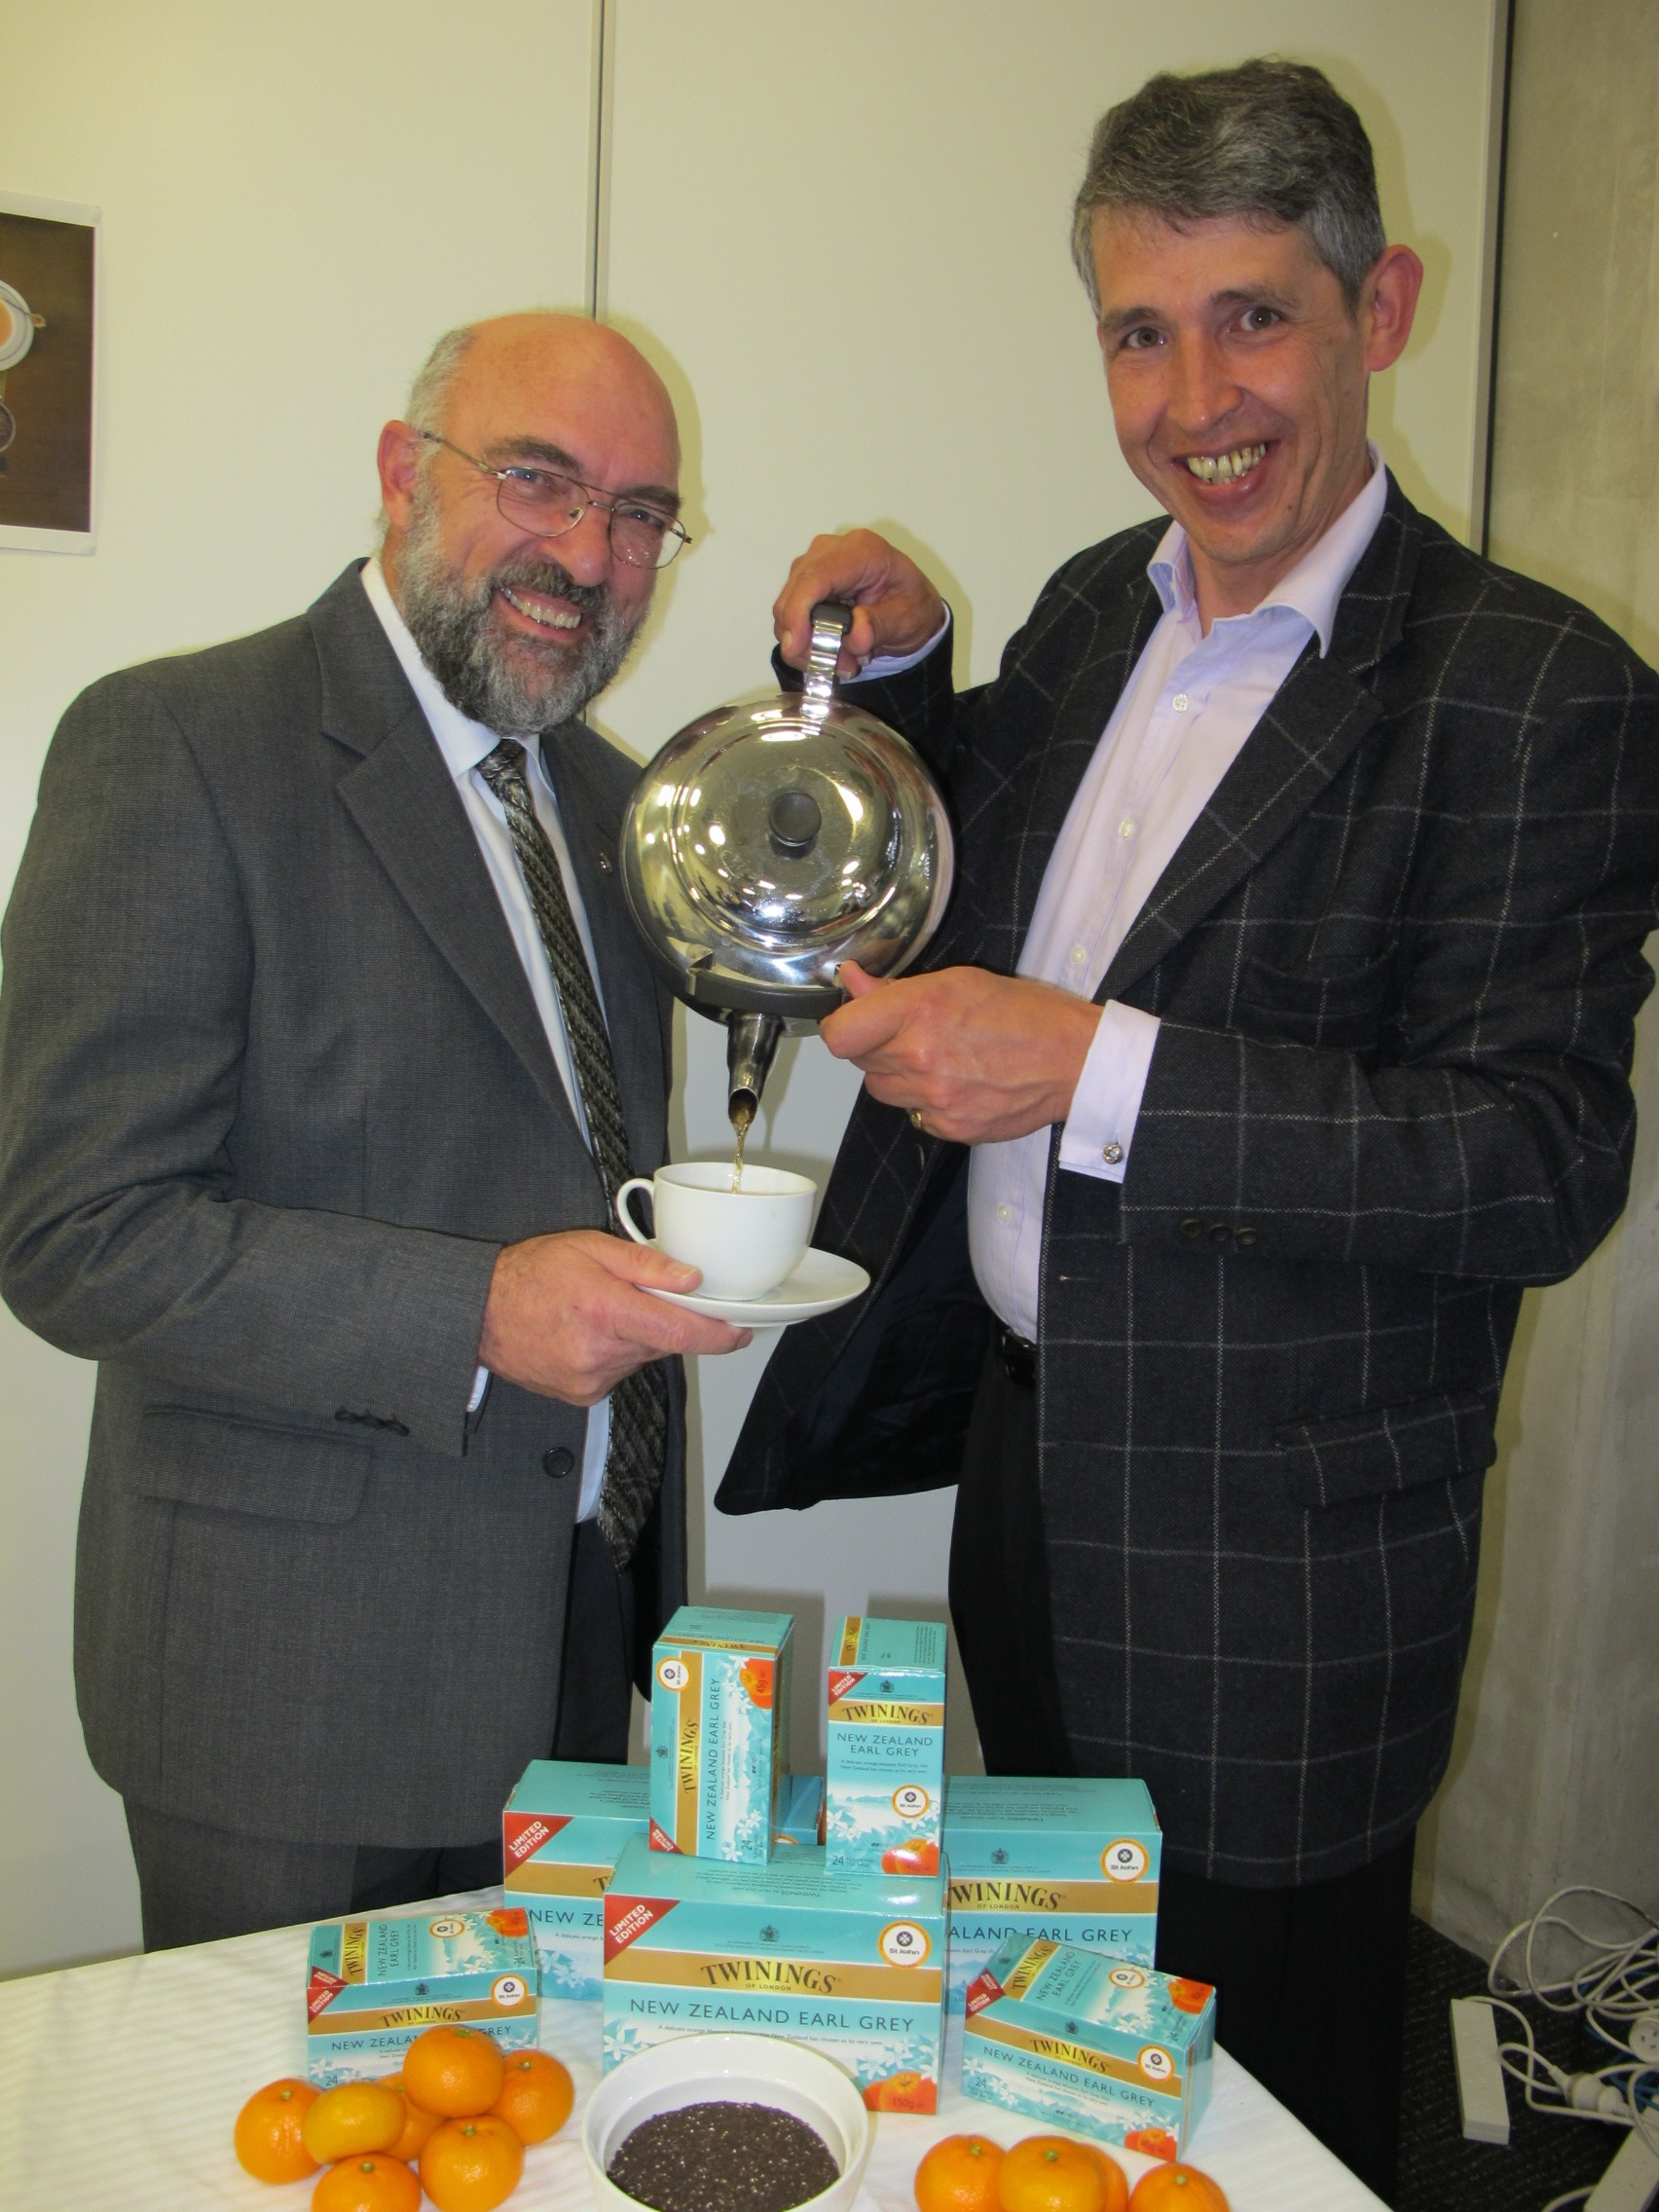 St John Fundraising Manager Jim Datson shares a cup of tea with Stephen Twining of Twinings tea company.